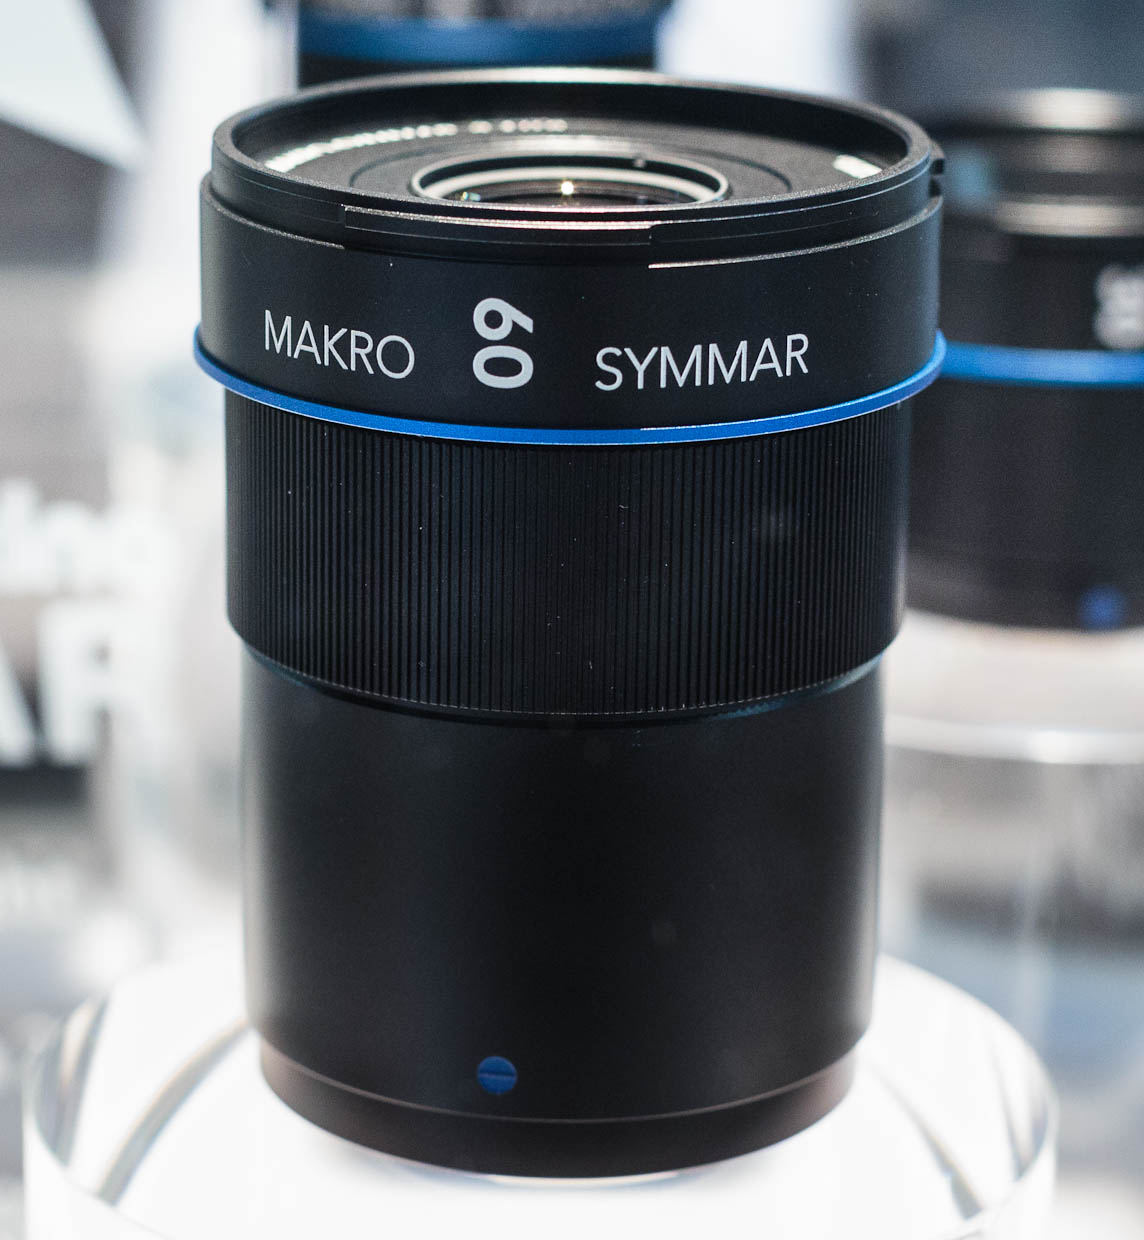 This Schneider Kreuznach prototype for a 60mm f2.4 macro lens shows the marriage of the mirroless world of Micro Four Thirds cameras with the world of premium German lenses.